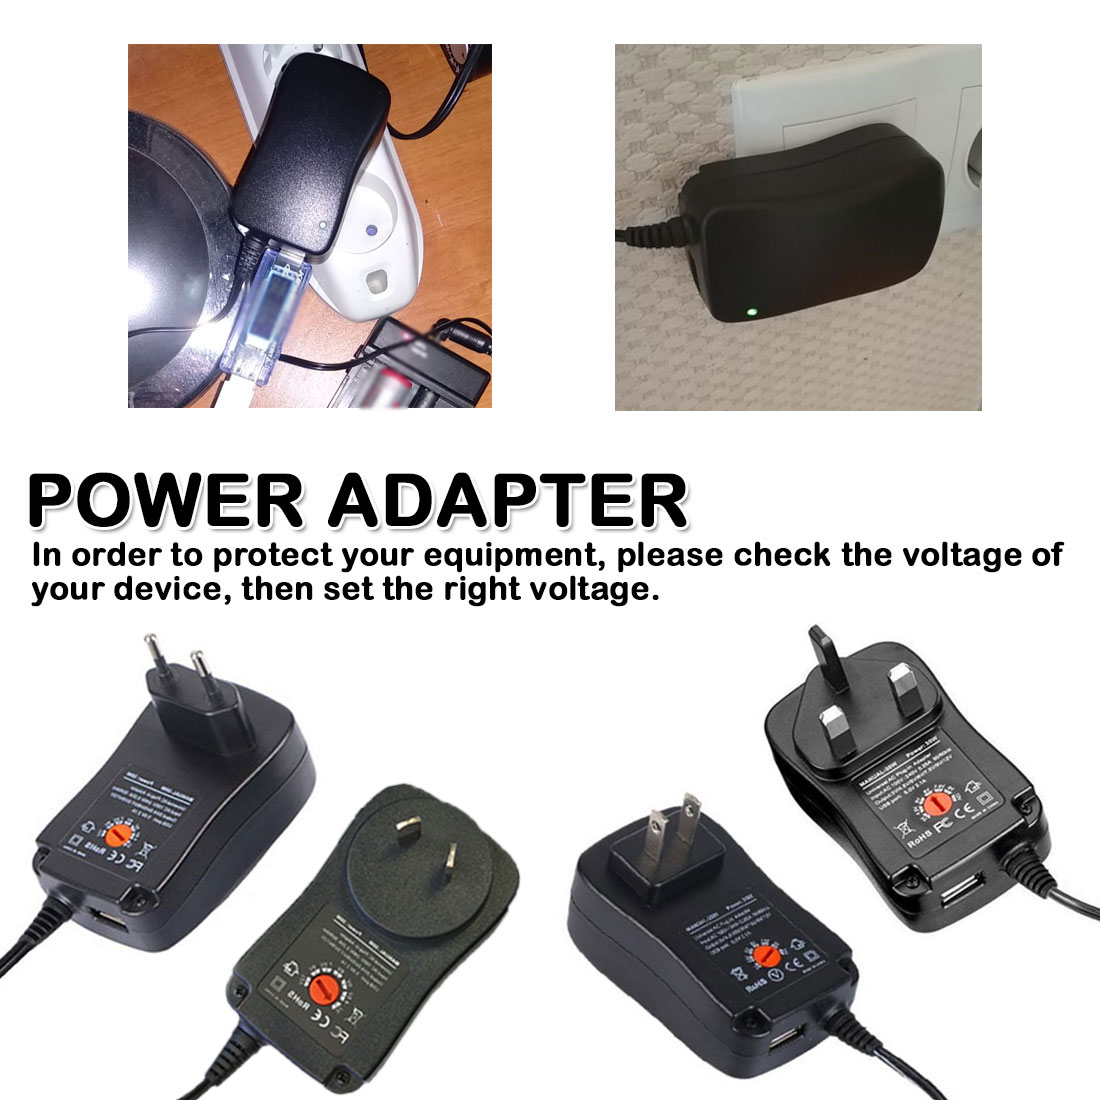 <font><b>3V</b></font> 4.5V 5V 6V 7.5V 9V <font><b>12V</b></font> 250mA <font><b>AC</b></font> <font><b>DC</b></font> Adapter Adjustable Universal Charger Supply for led light strip lamp 30W image